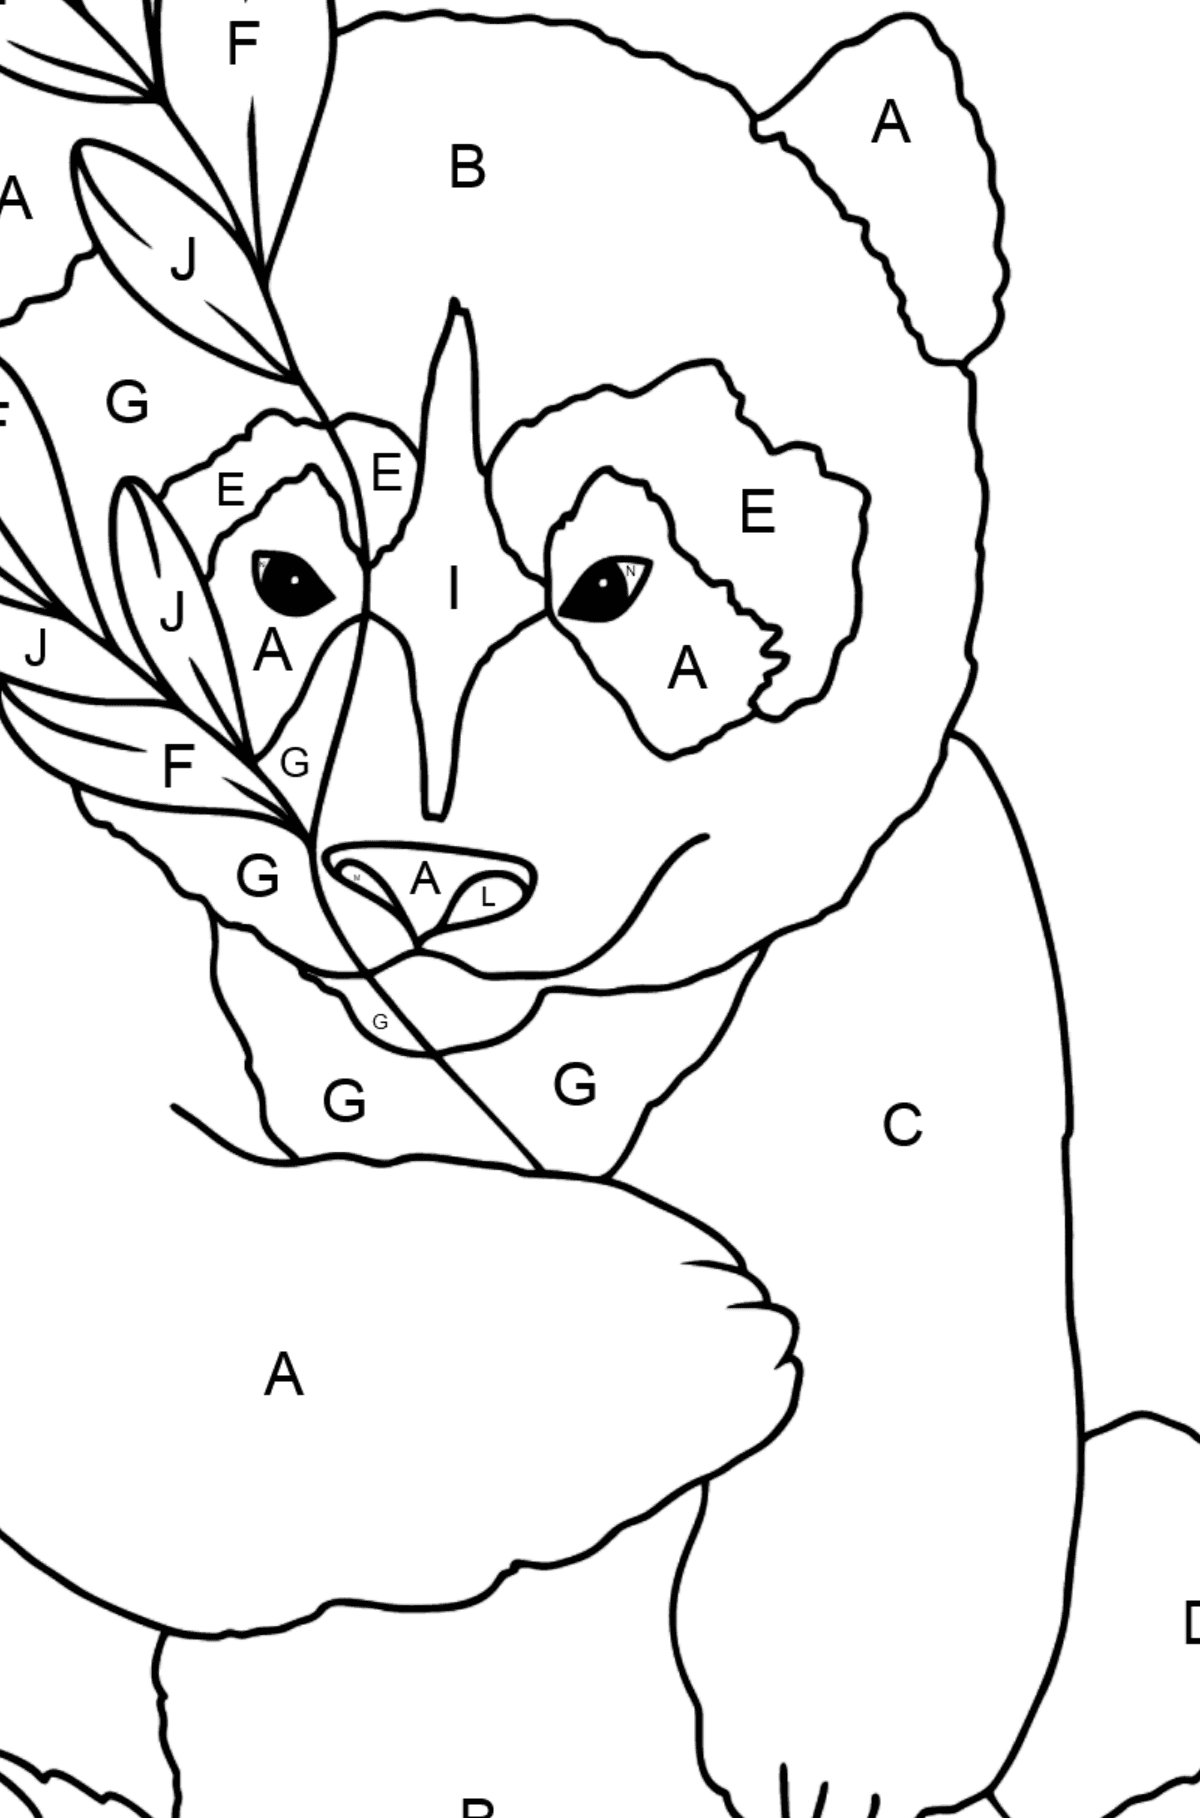 Coloring Page - A Panda is Having a Rest - Coloring by Letters for Kids